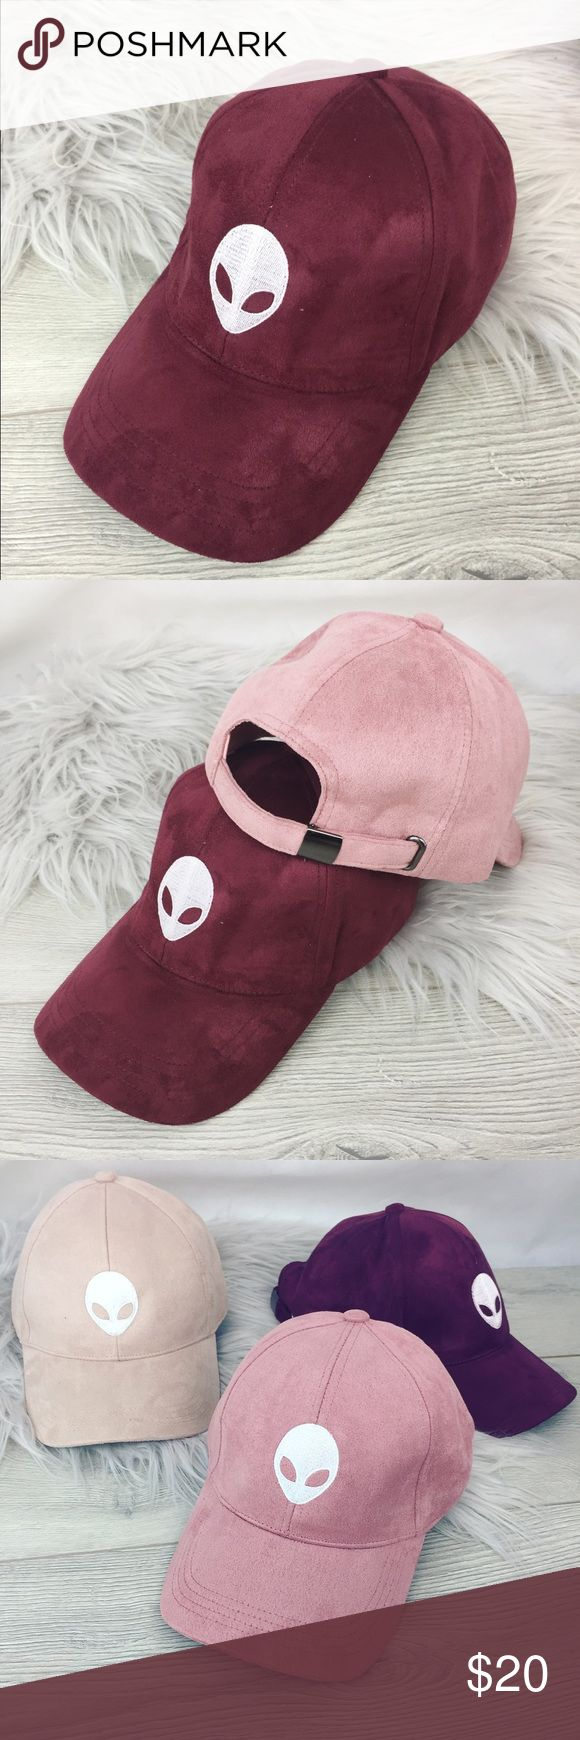 Maroon Alien Bae Vegan Suede Dad Hat Maroon Alien Bae Vegan Suede Dad Hat. This posting is for the maroon Dad Hat. NWT. Adjustable, one size fits most! Not UNIF tagged for exposure UNIF Accessories Hats